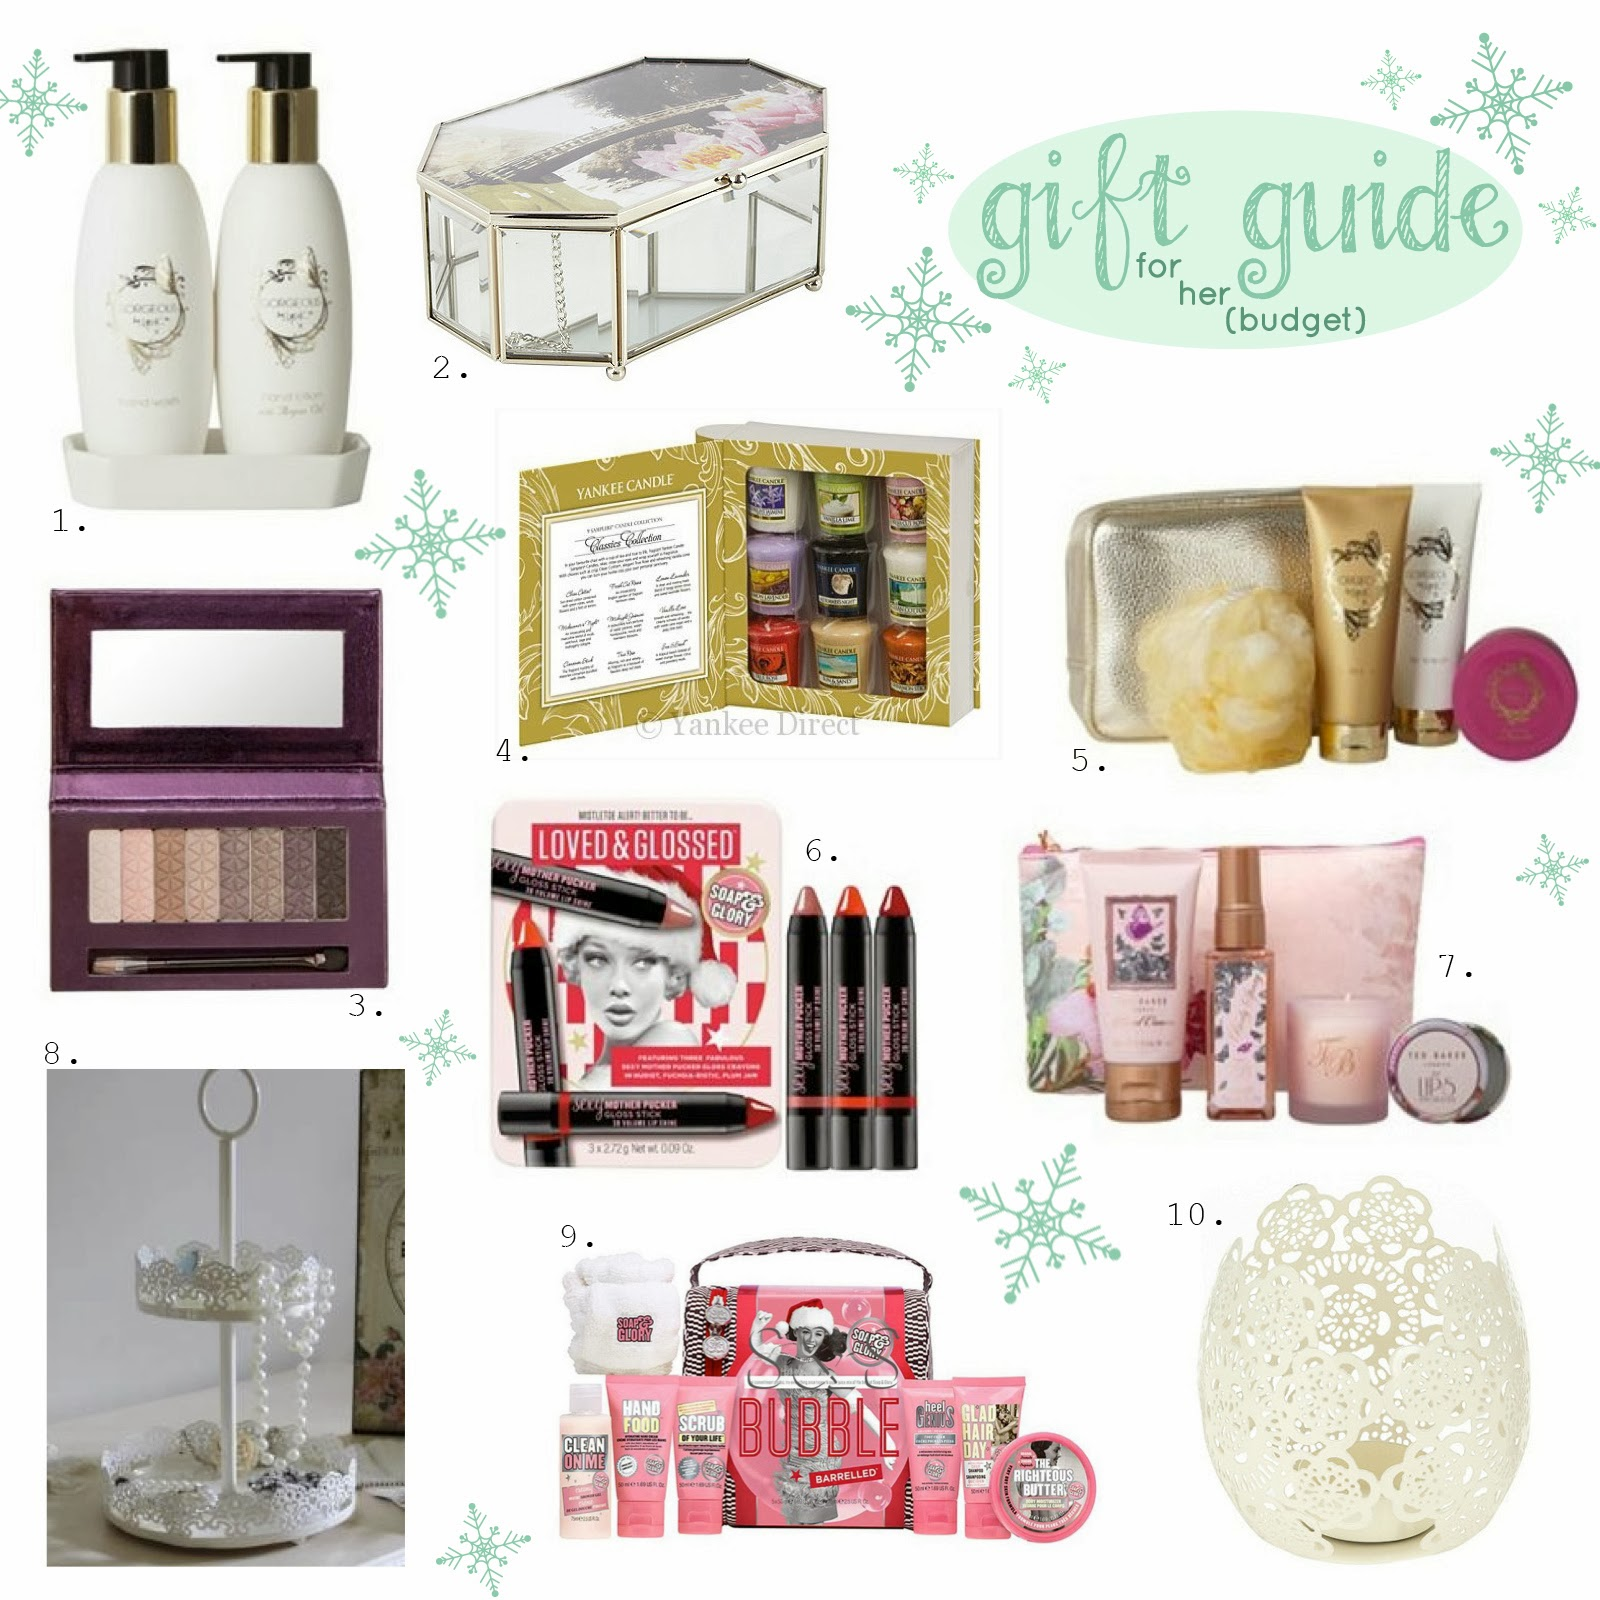 christmas gift guide 2013 for her budget - Best Christmas Gifts 2014 For Her